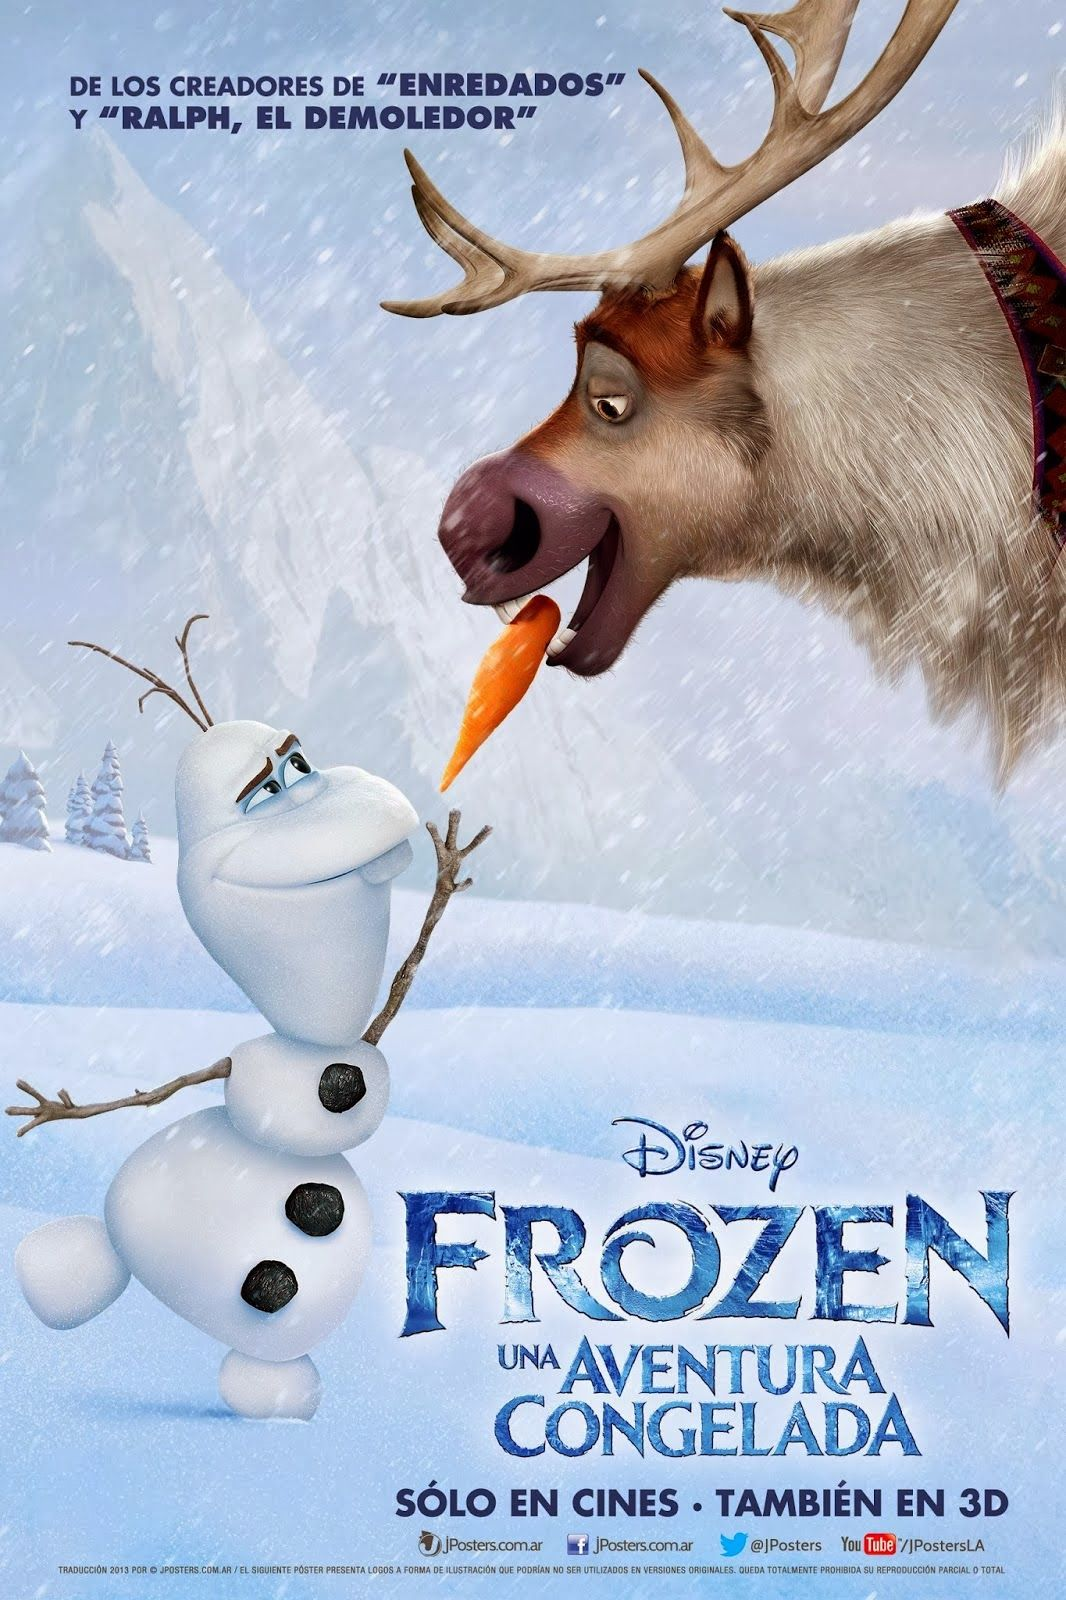 best Frozen mobile wallpapers images on Pinterest